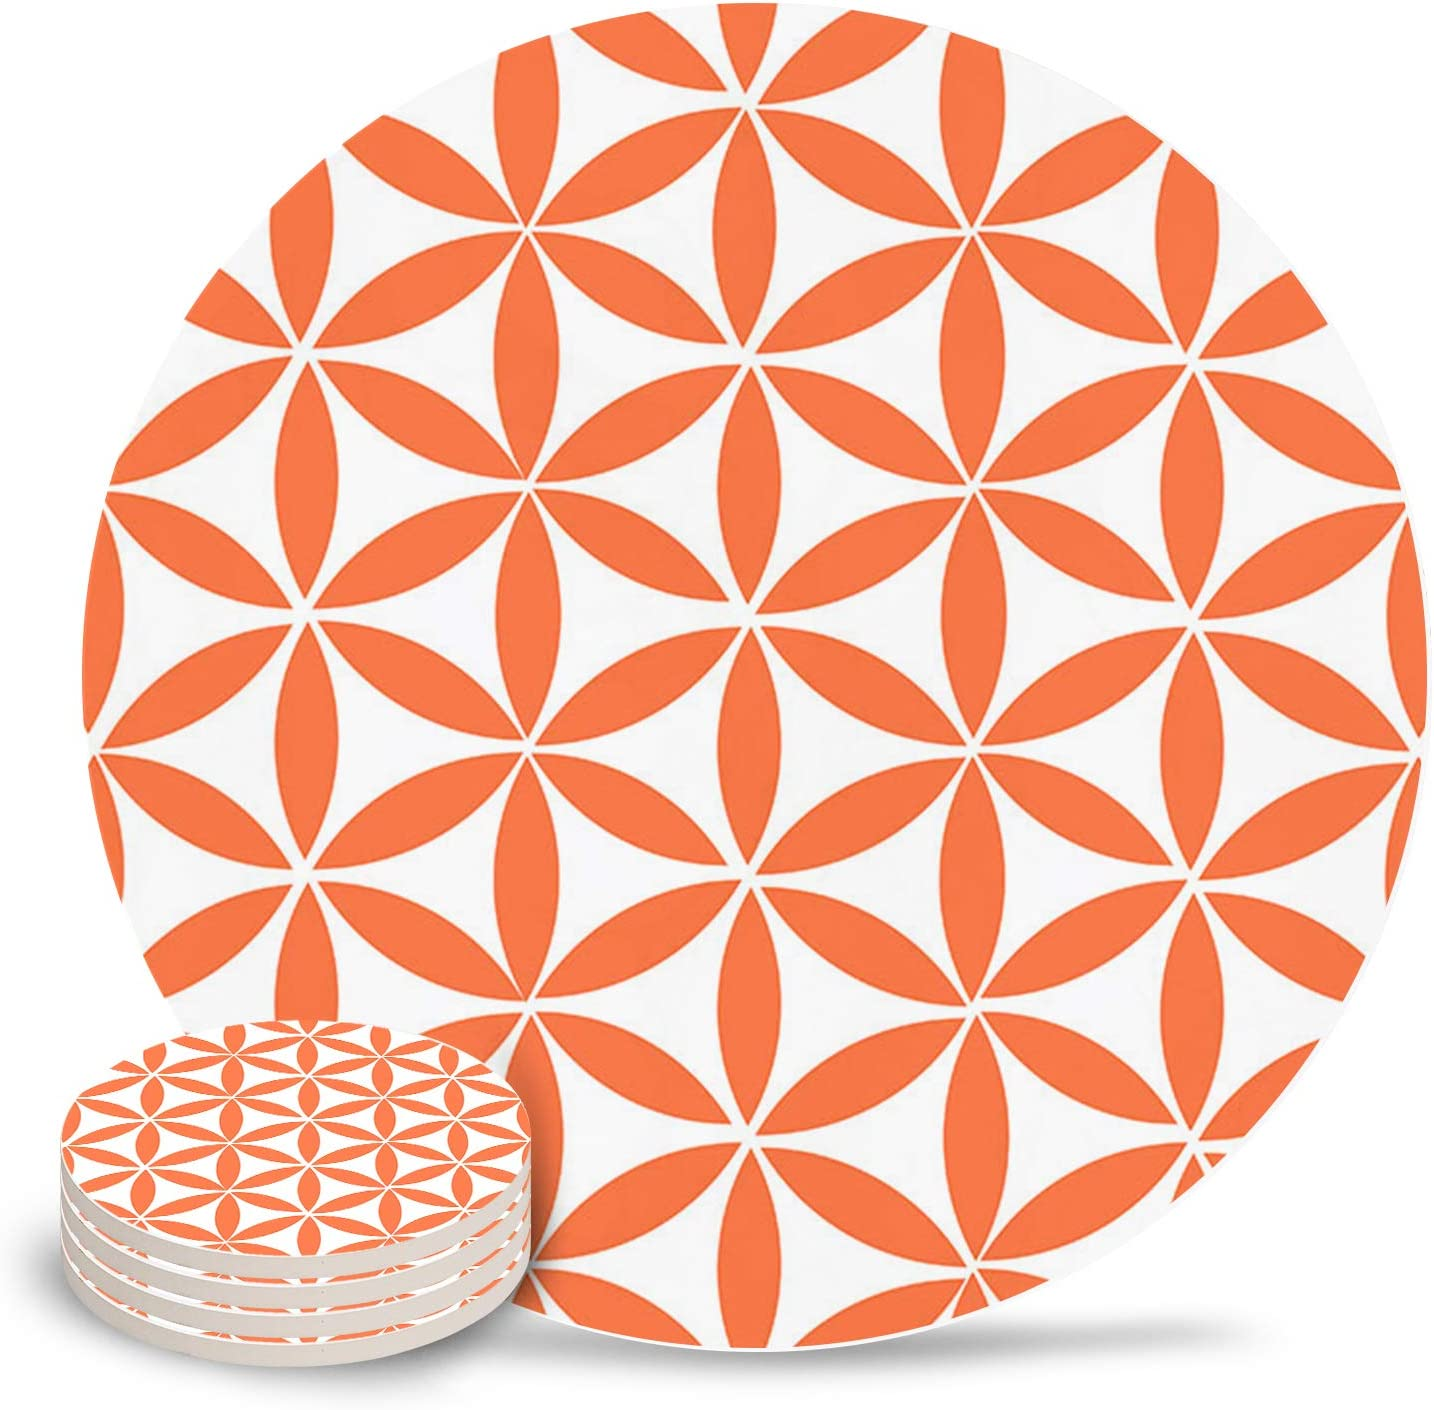 Absorbent Ceramic Coasters for Drinks 4